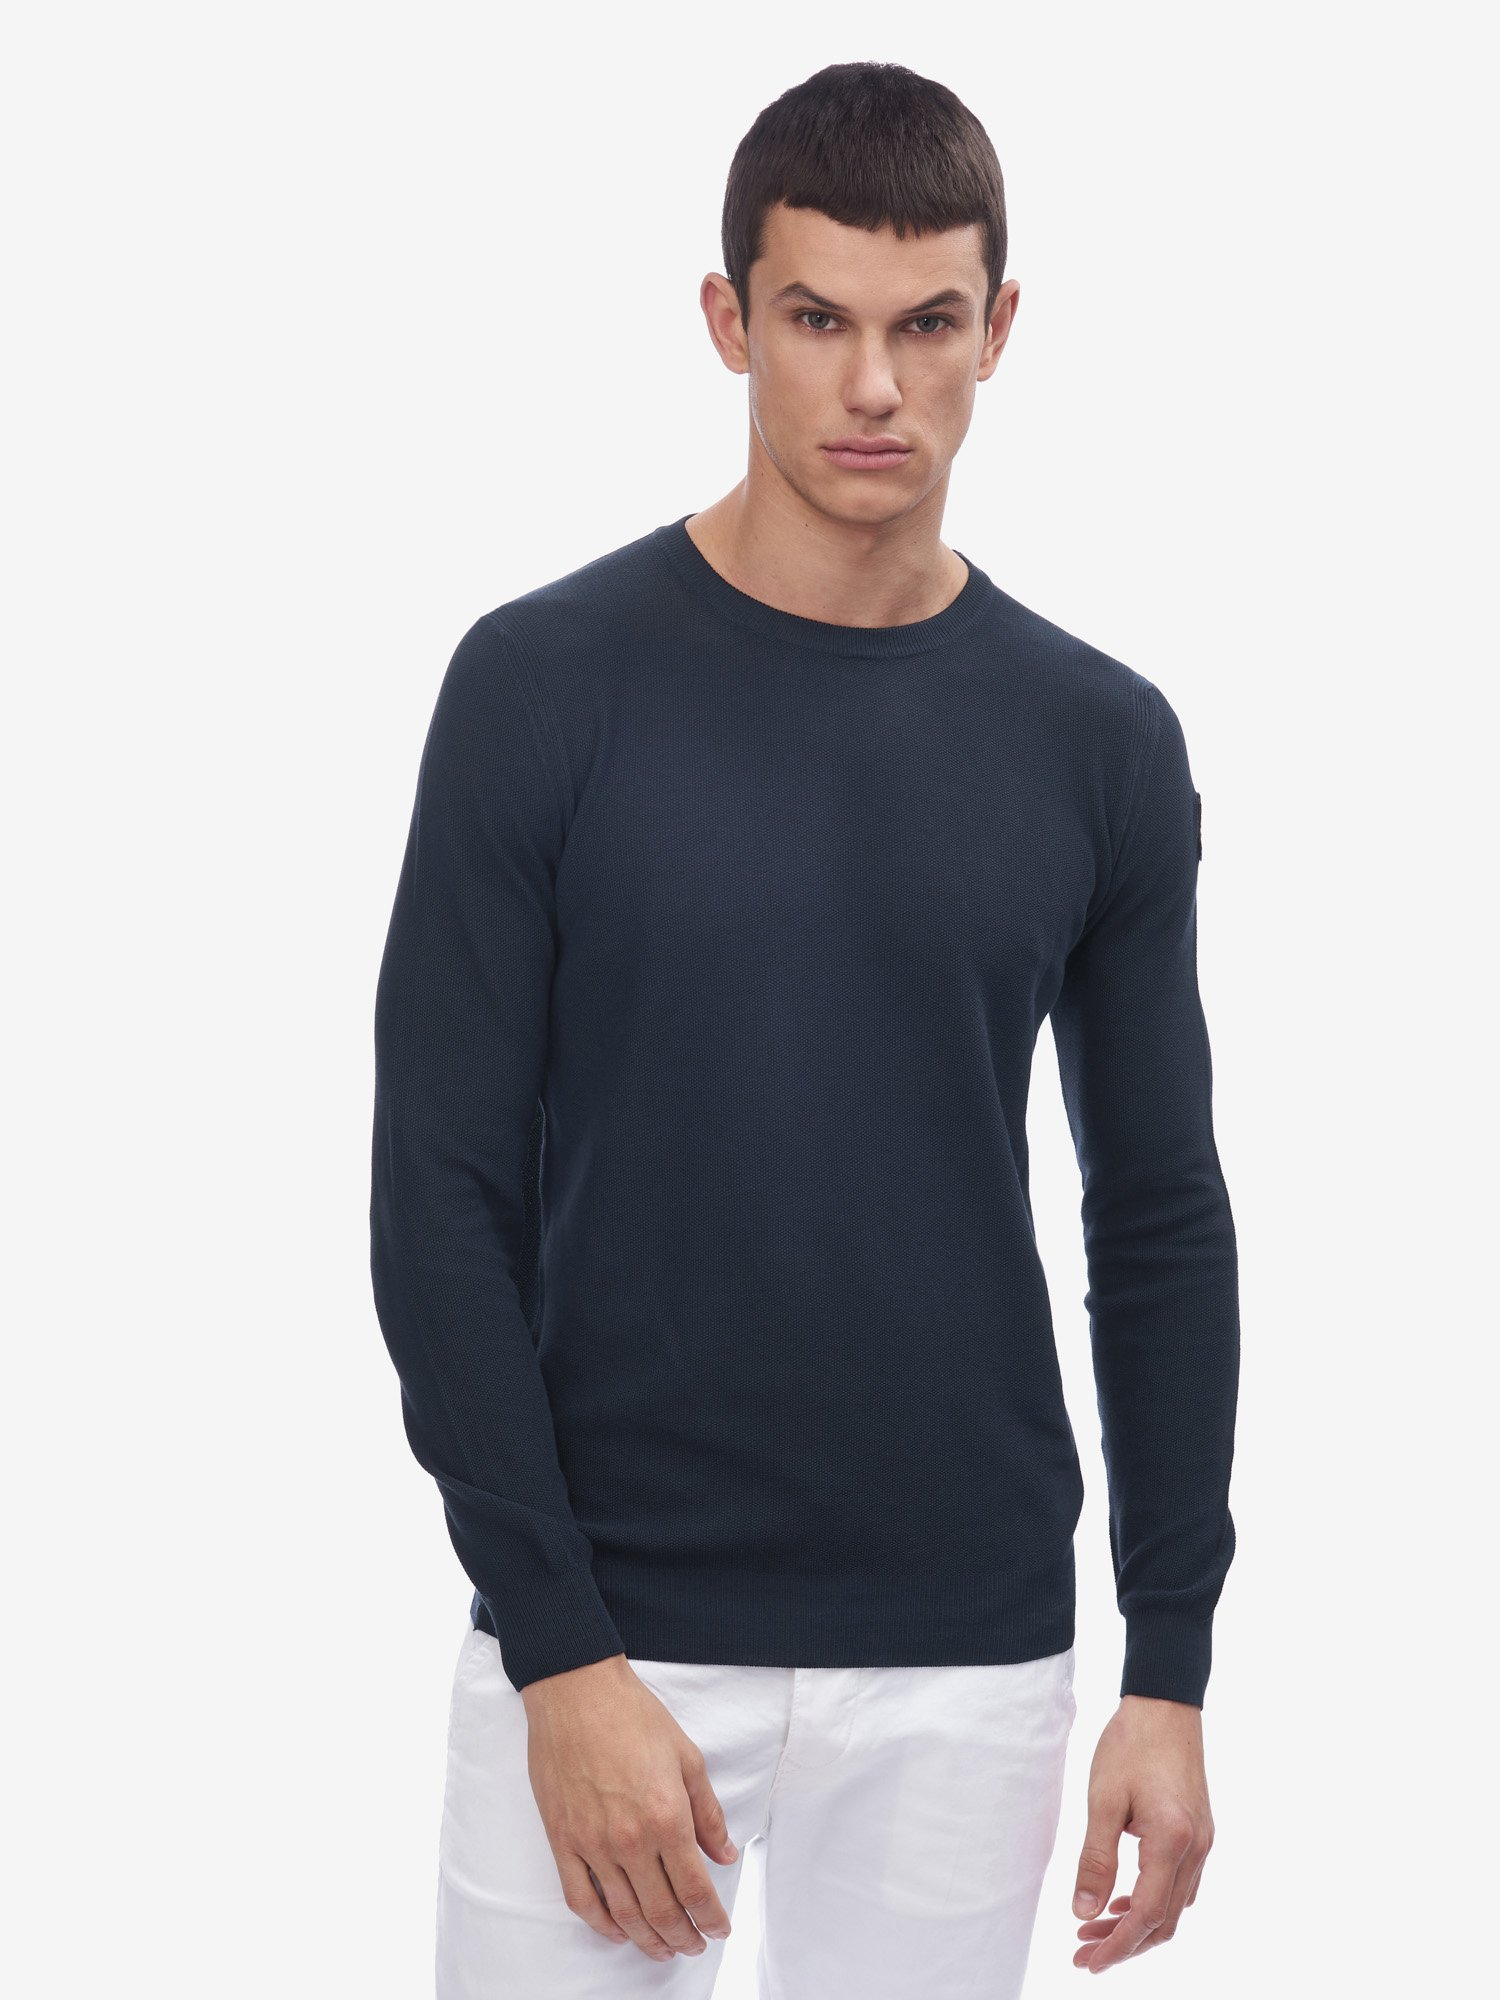 PIQUET KNIT SWEATER - Blauer